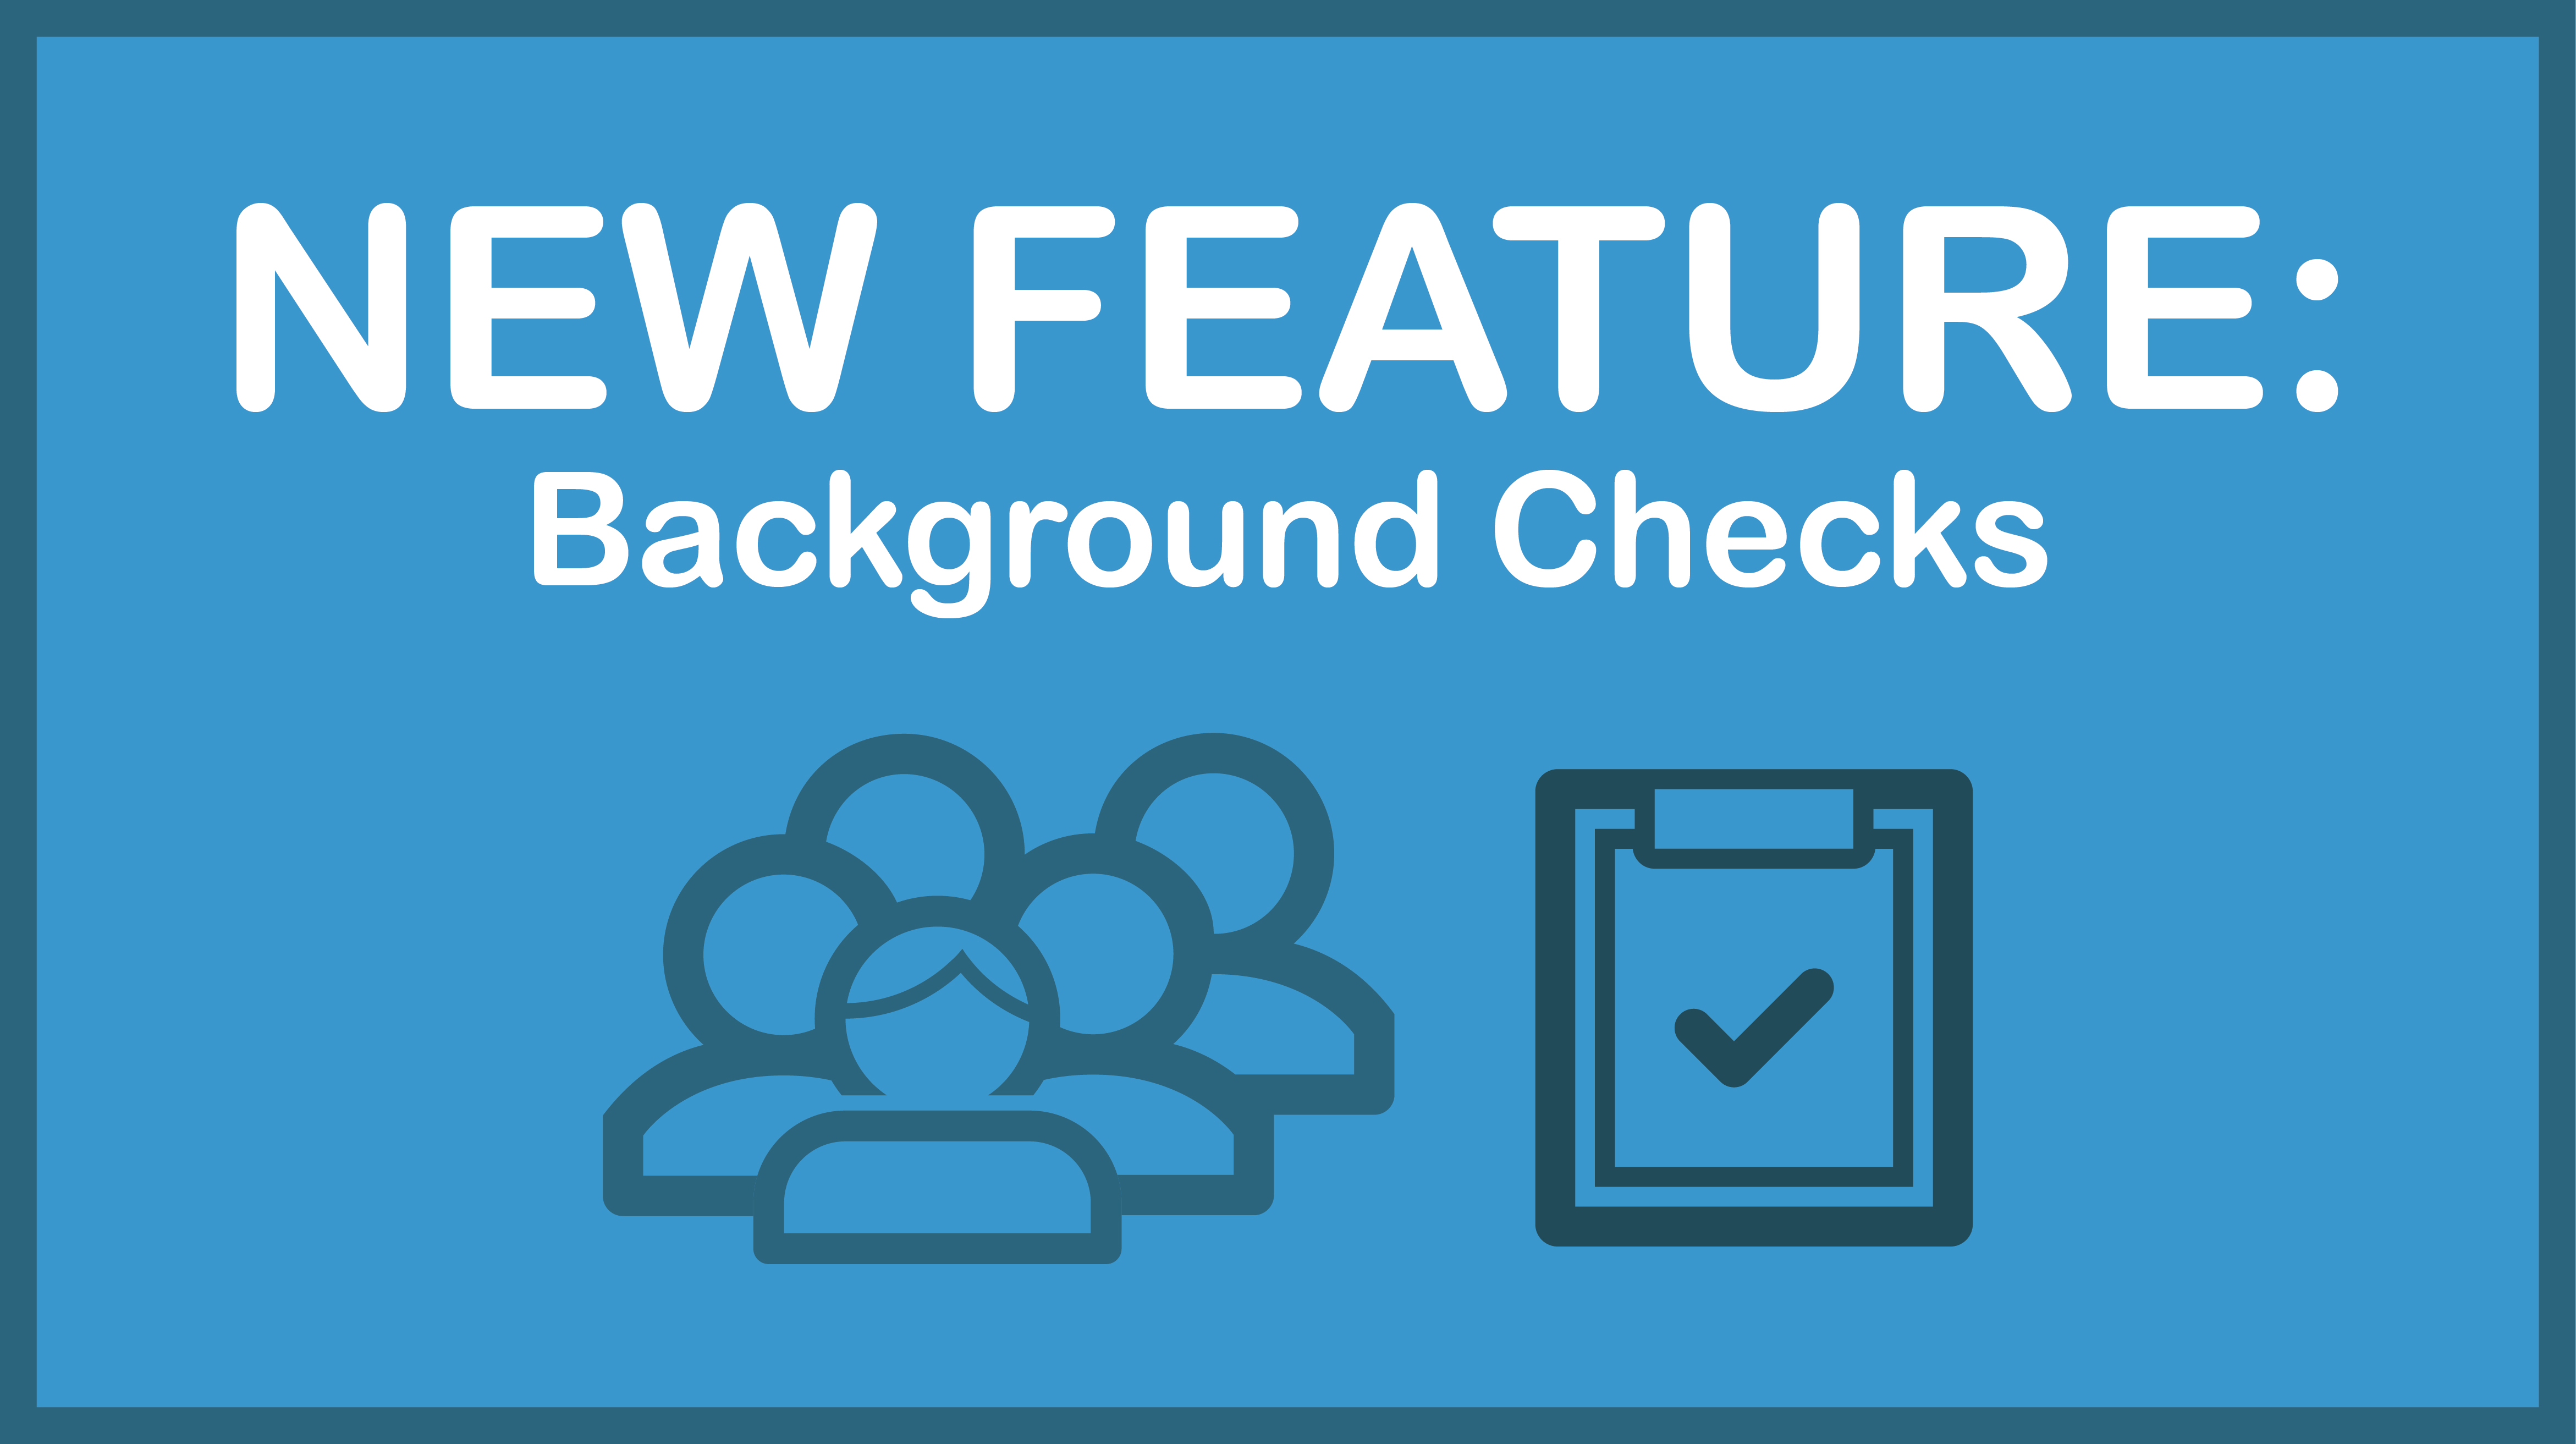 New Feature: Background Checks for Youth Sports